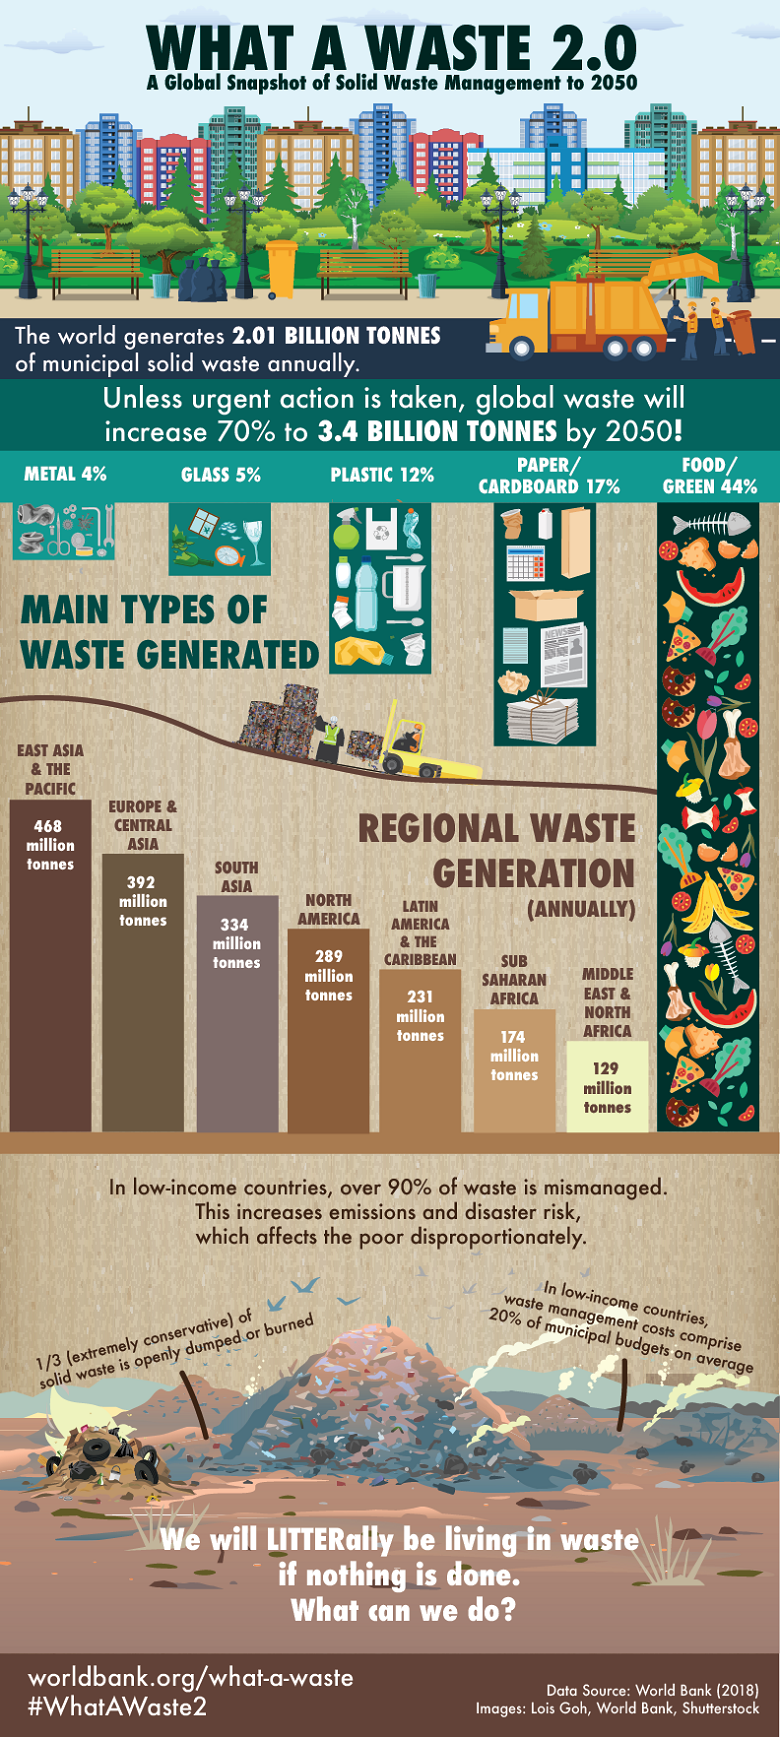 What a Waste 2 0: A Global Snapshot of Solid Waste Management to 2050